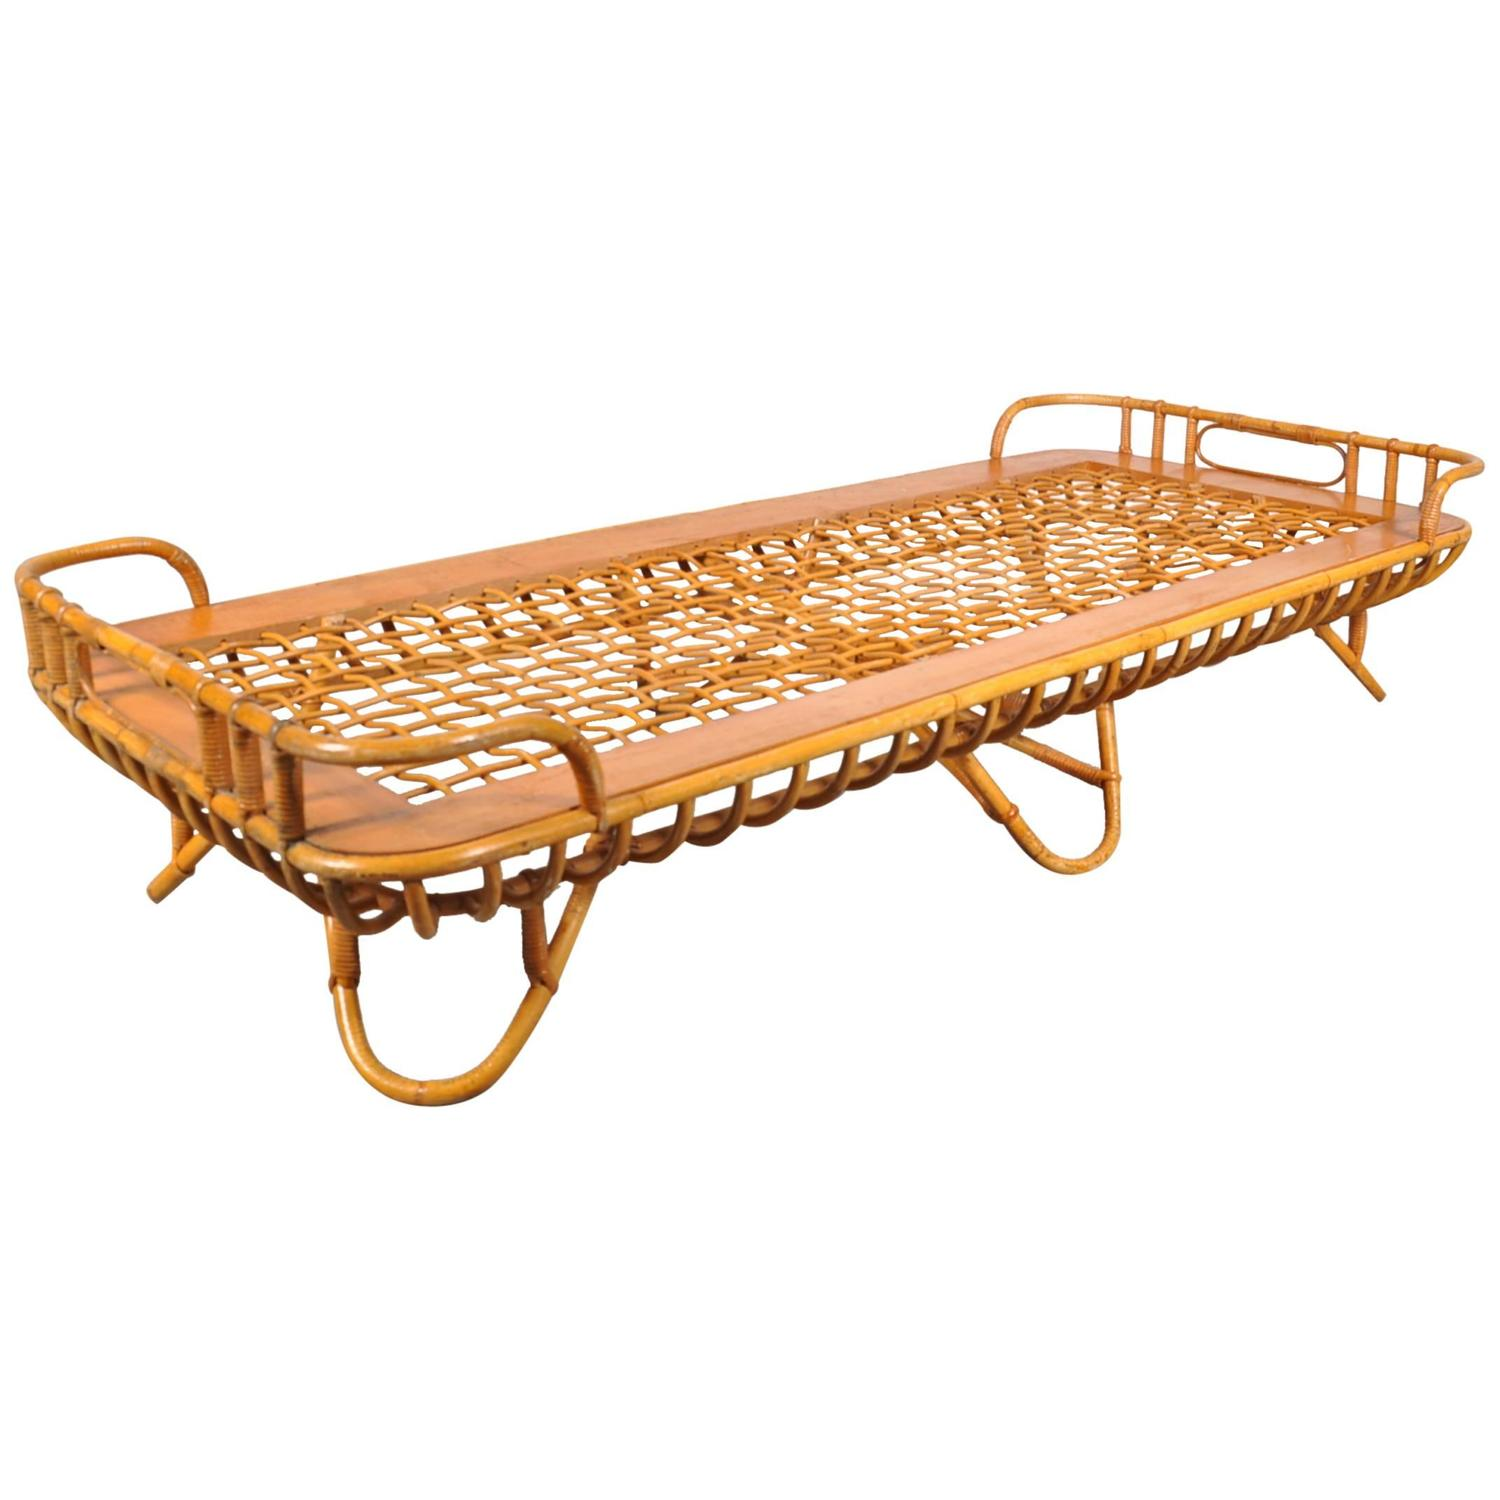 Rattan Daybed By Roh 233 Netherlands Circa 1950 At 1stdibs